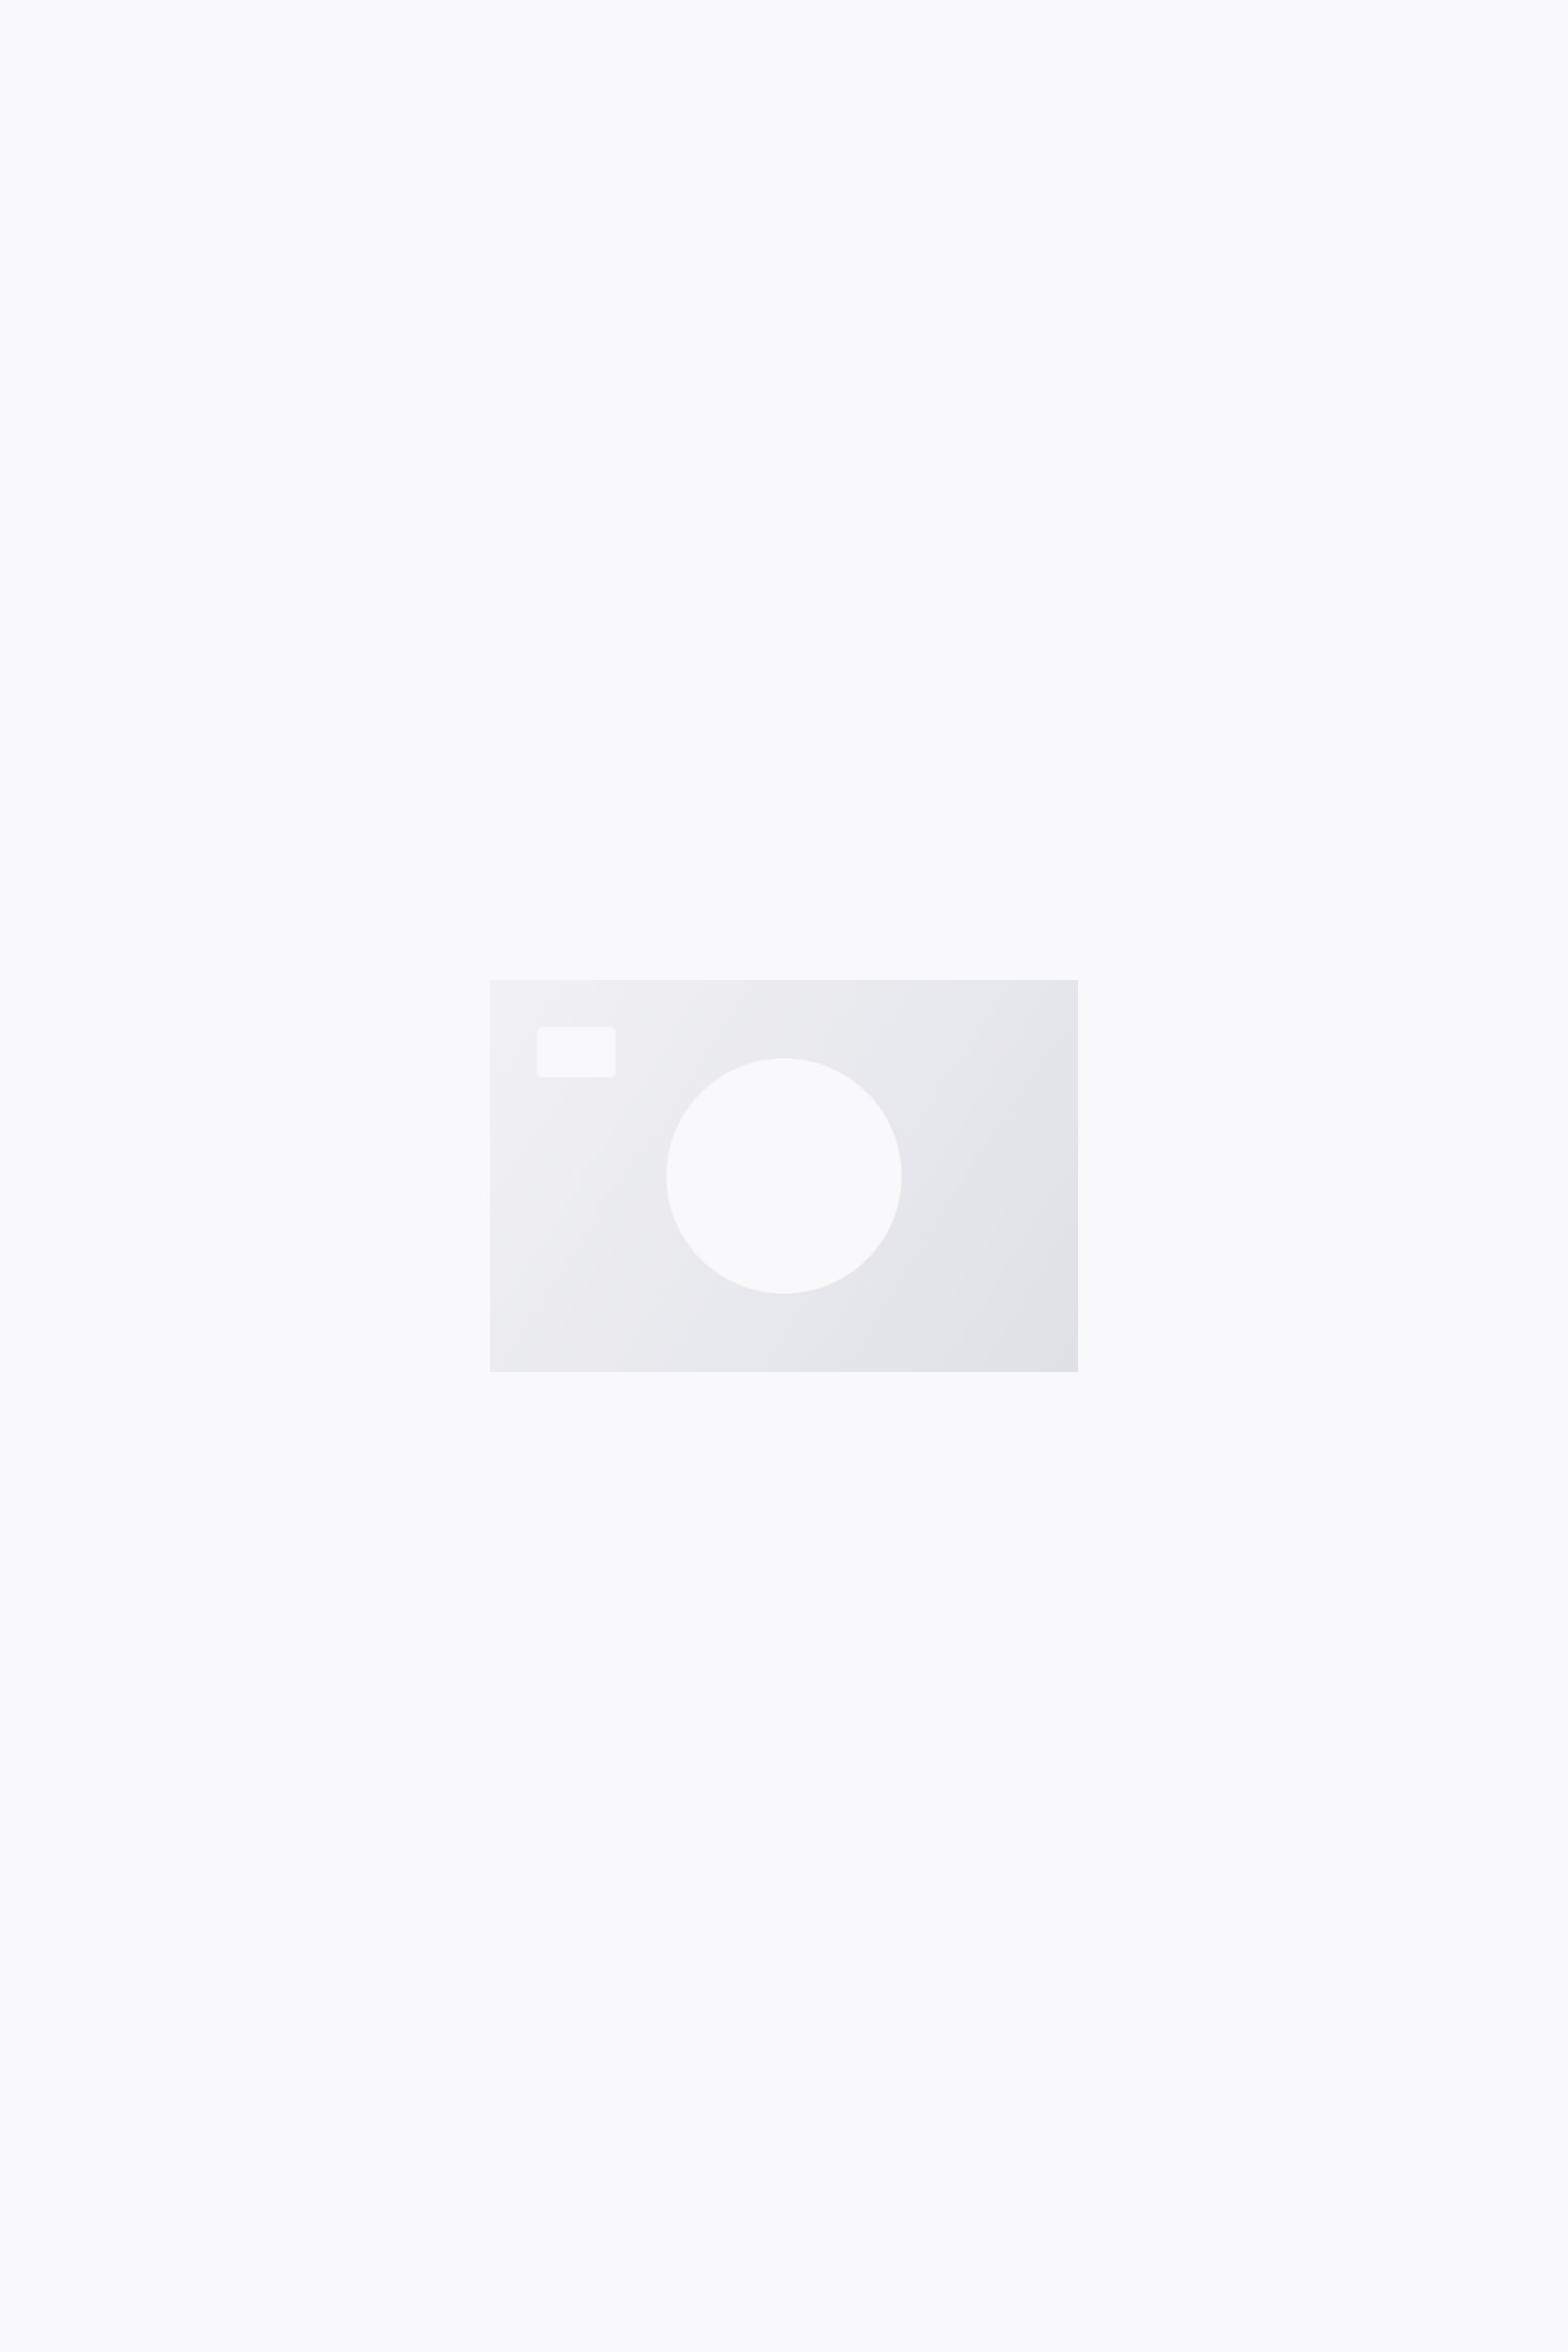 COS PYJAMA SHIRT,light grey